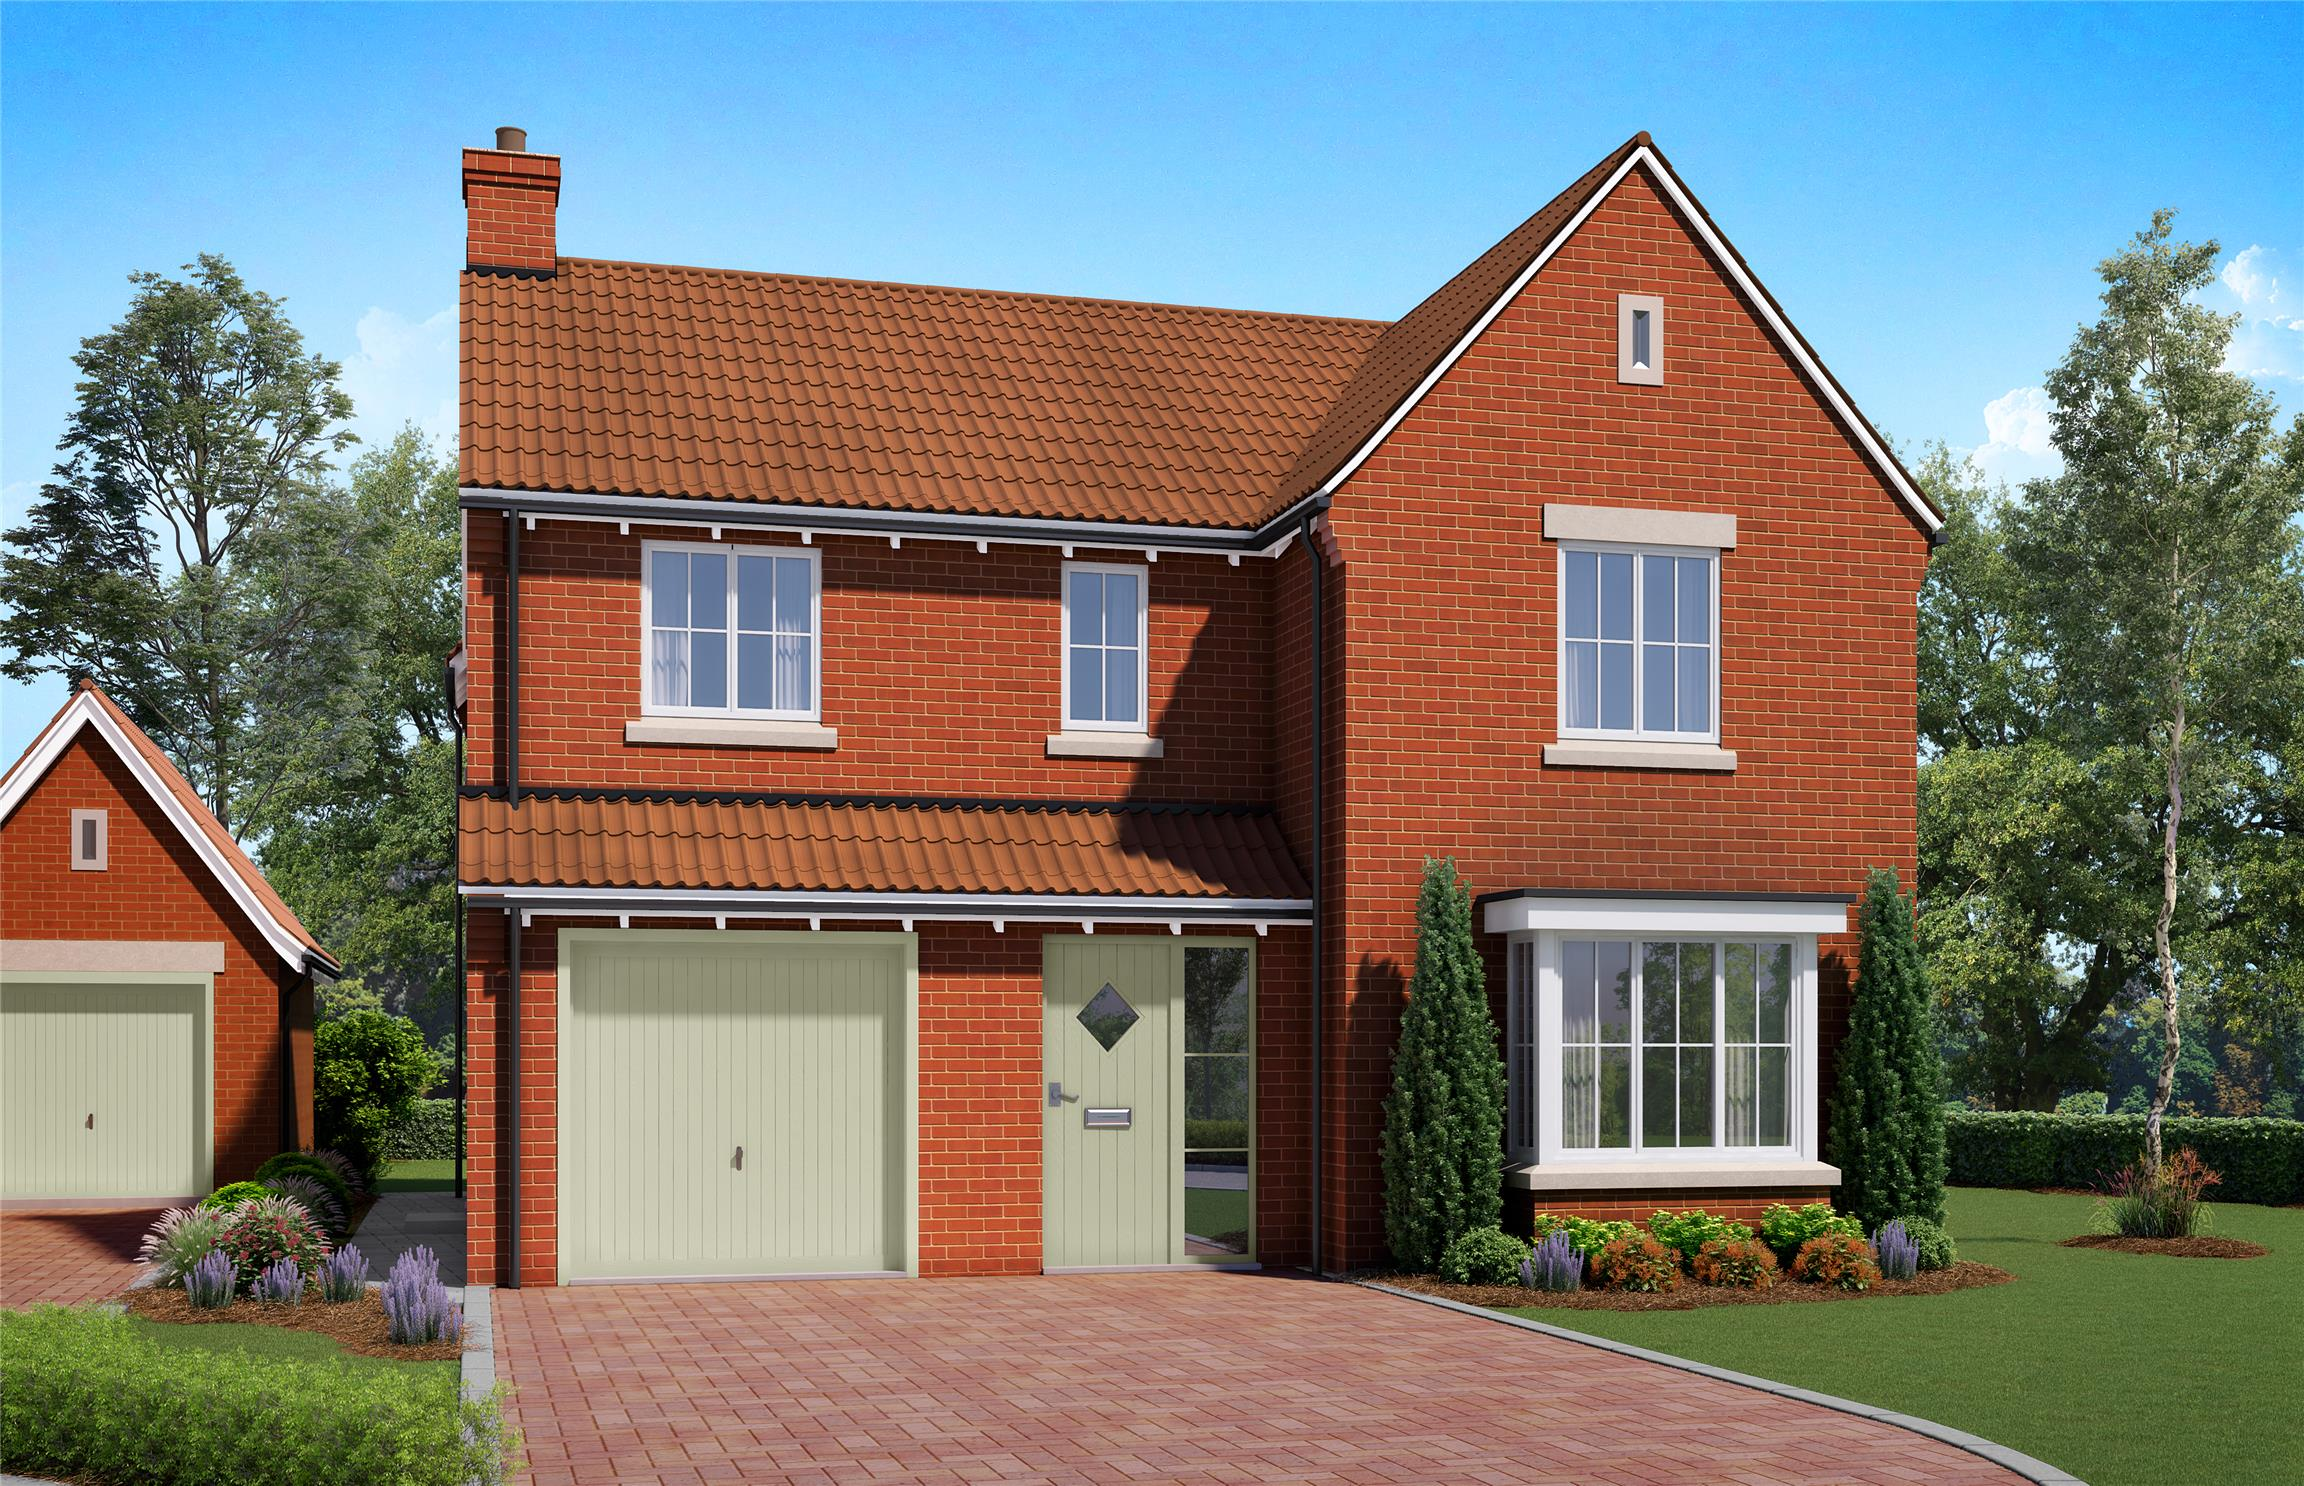 Plot 13, The Avon, Harford Place, Rangeworthy BS37